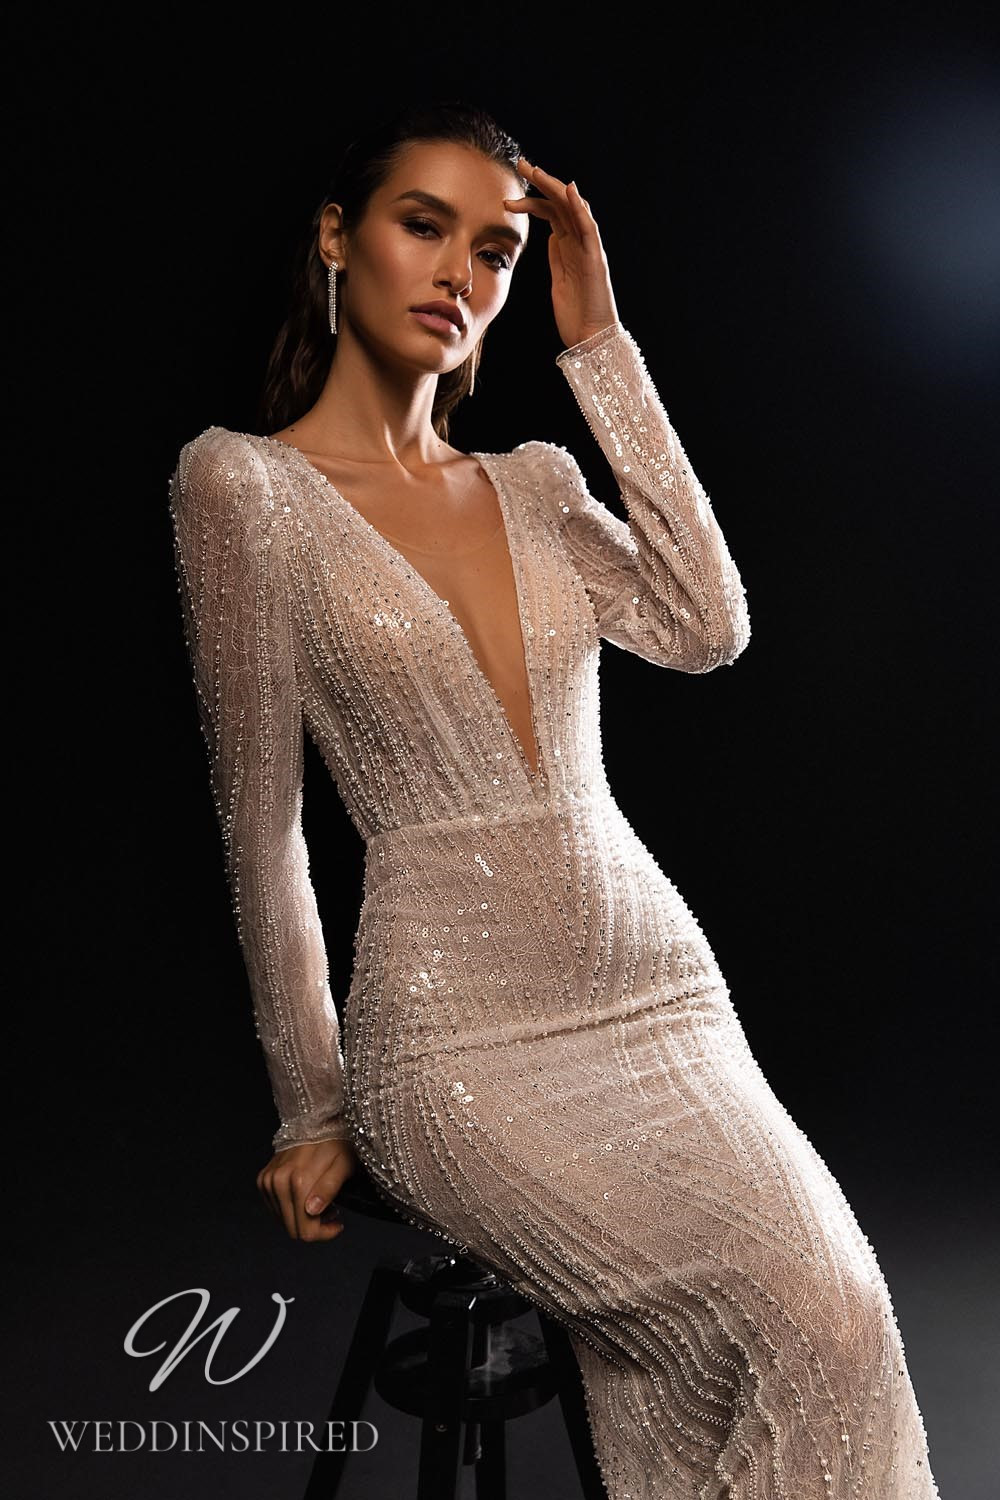 A WONÁ Concept 2021 sparkly mermaid wedding dress with long sleeves and a v neck